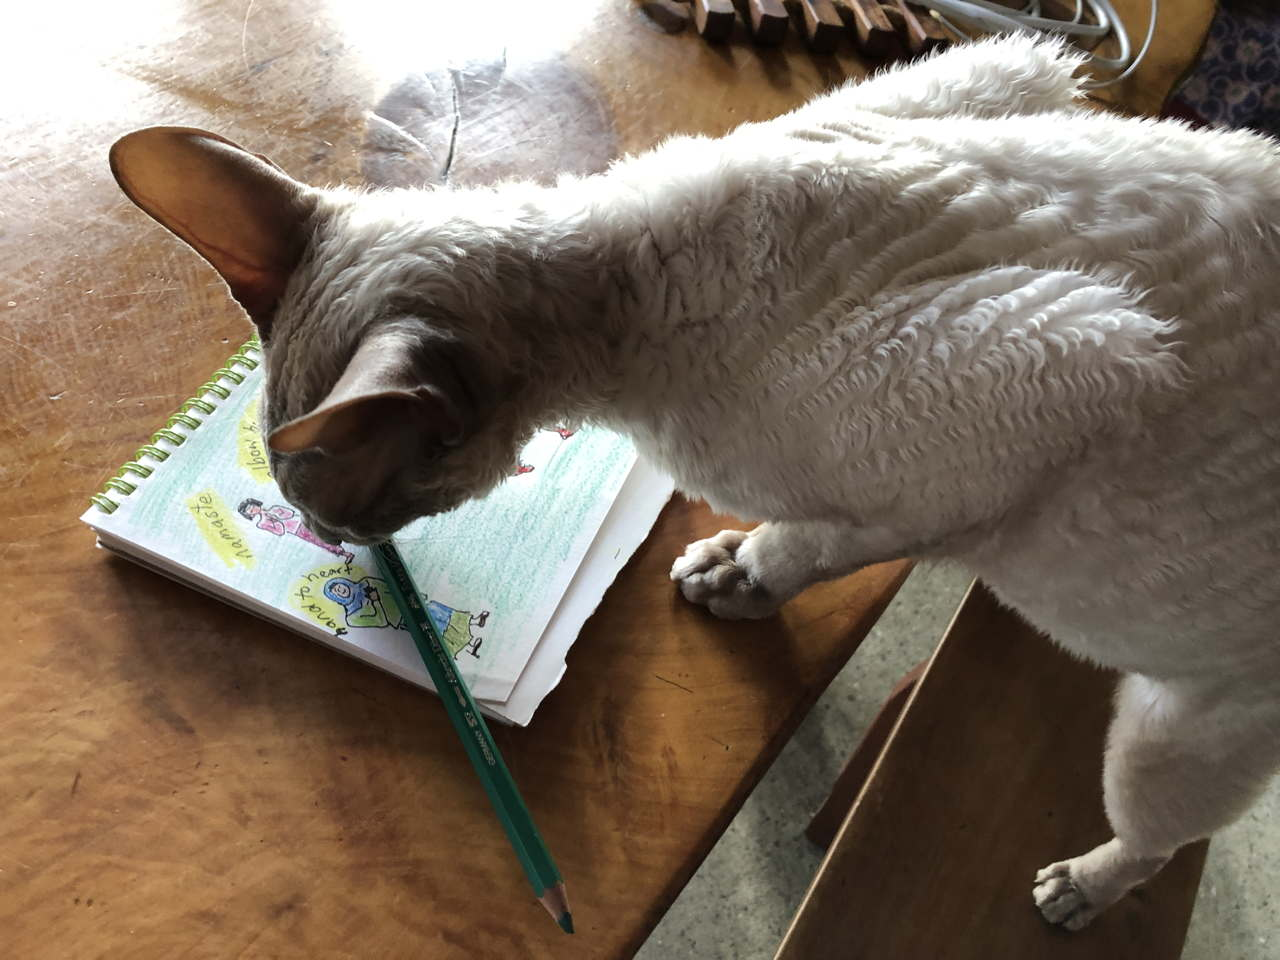 Photo of Cornish Rex cat colouring in a bad drawing